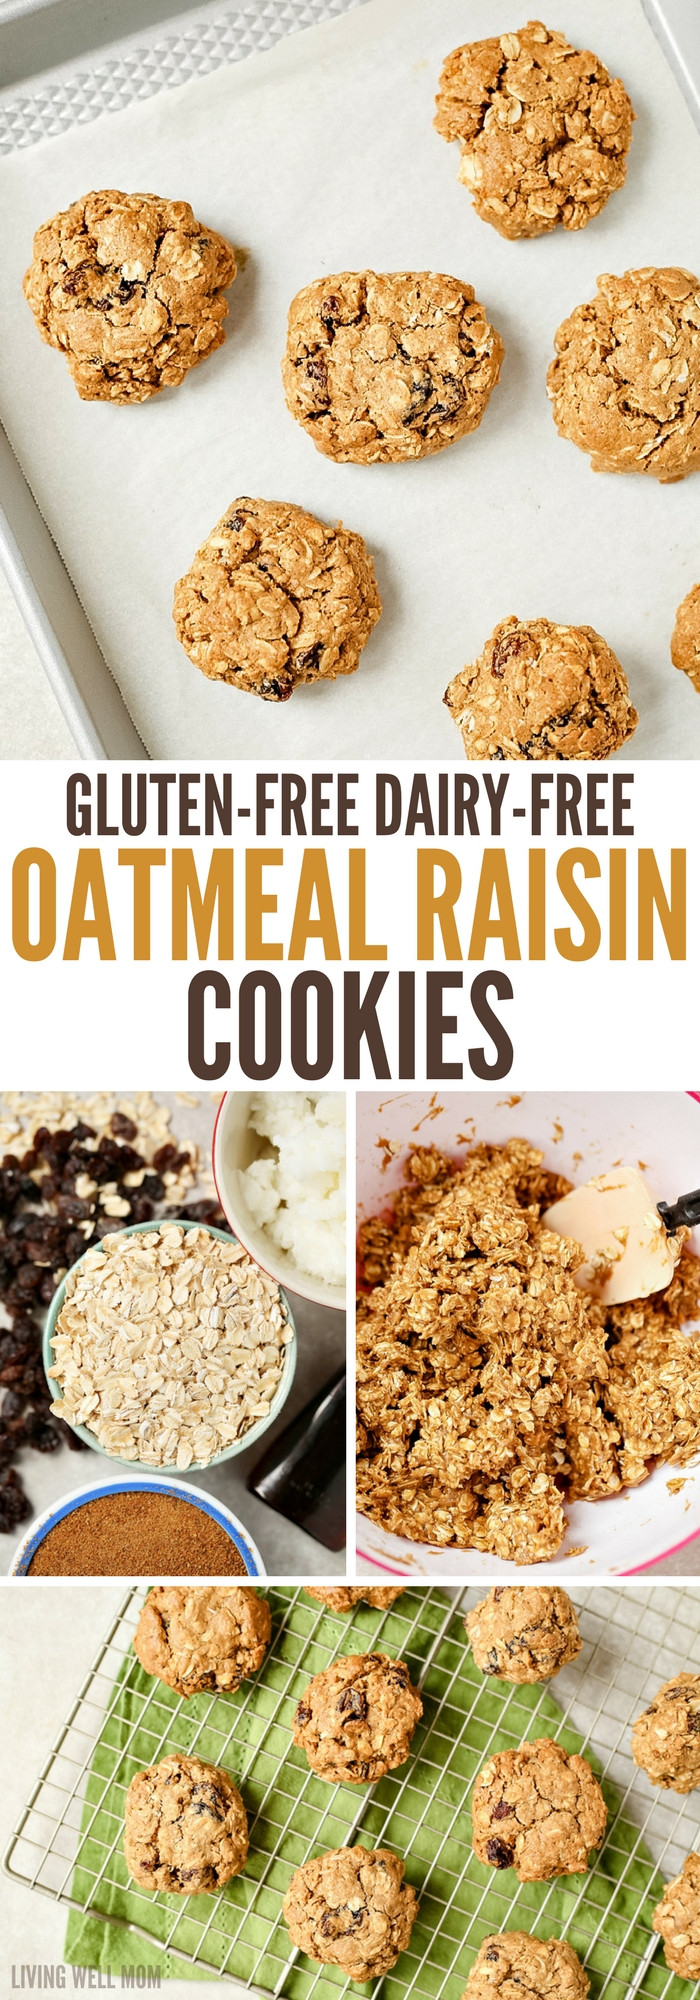 Dairy Free Cookie Recipes  Gluten Free Dairy Free Oatmeal Raisin Cookies